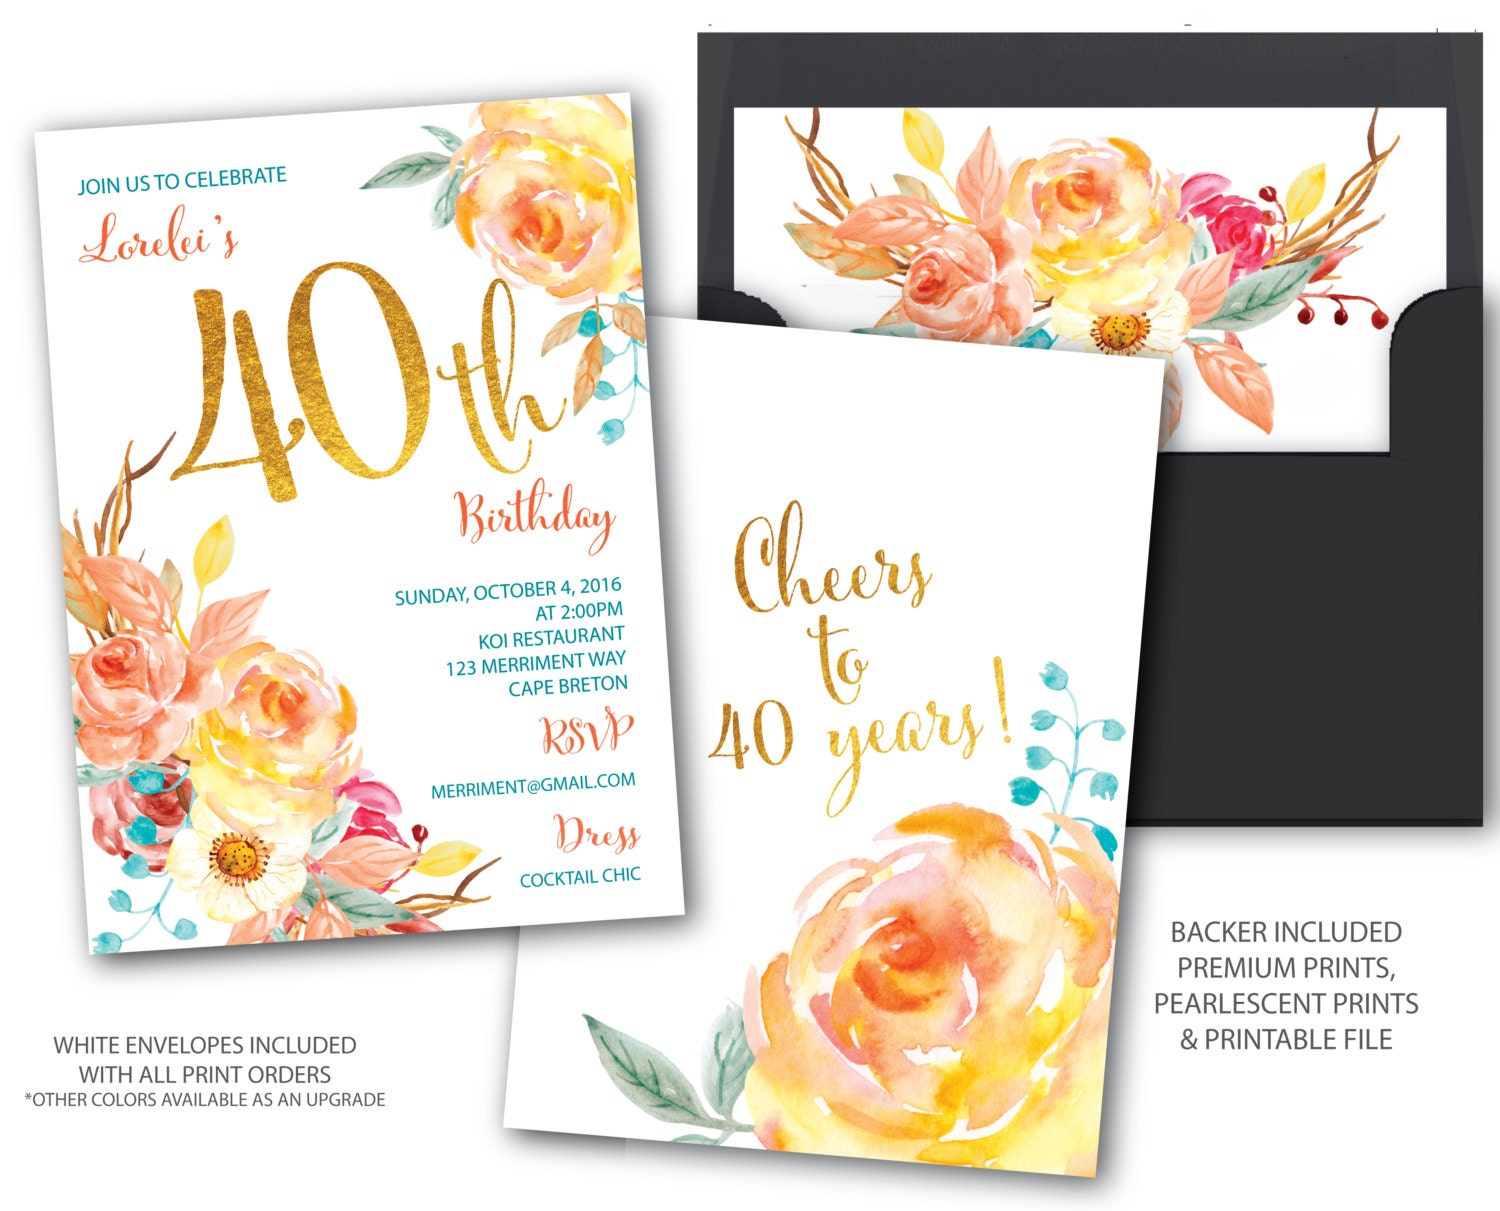 Fall 40 birthday invitation 40th birthday invitation boho fall 40 birthday invitation 40th birthday invitation boho chick cheers to 40 years gold watercolor cape breton collection stopboris Images